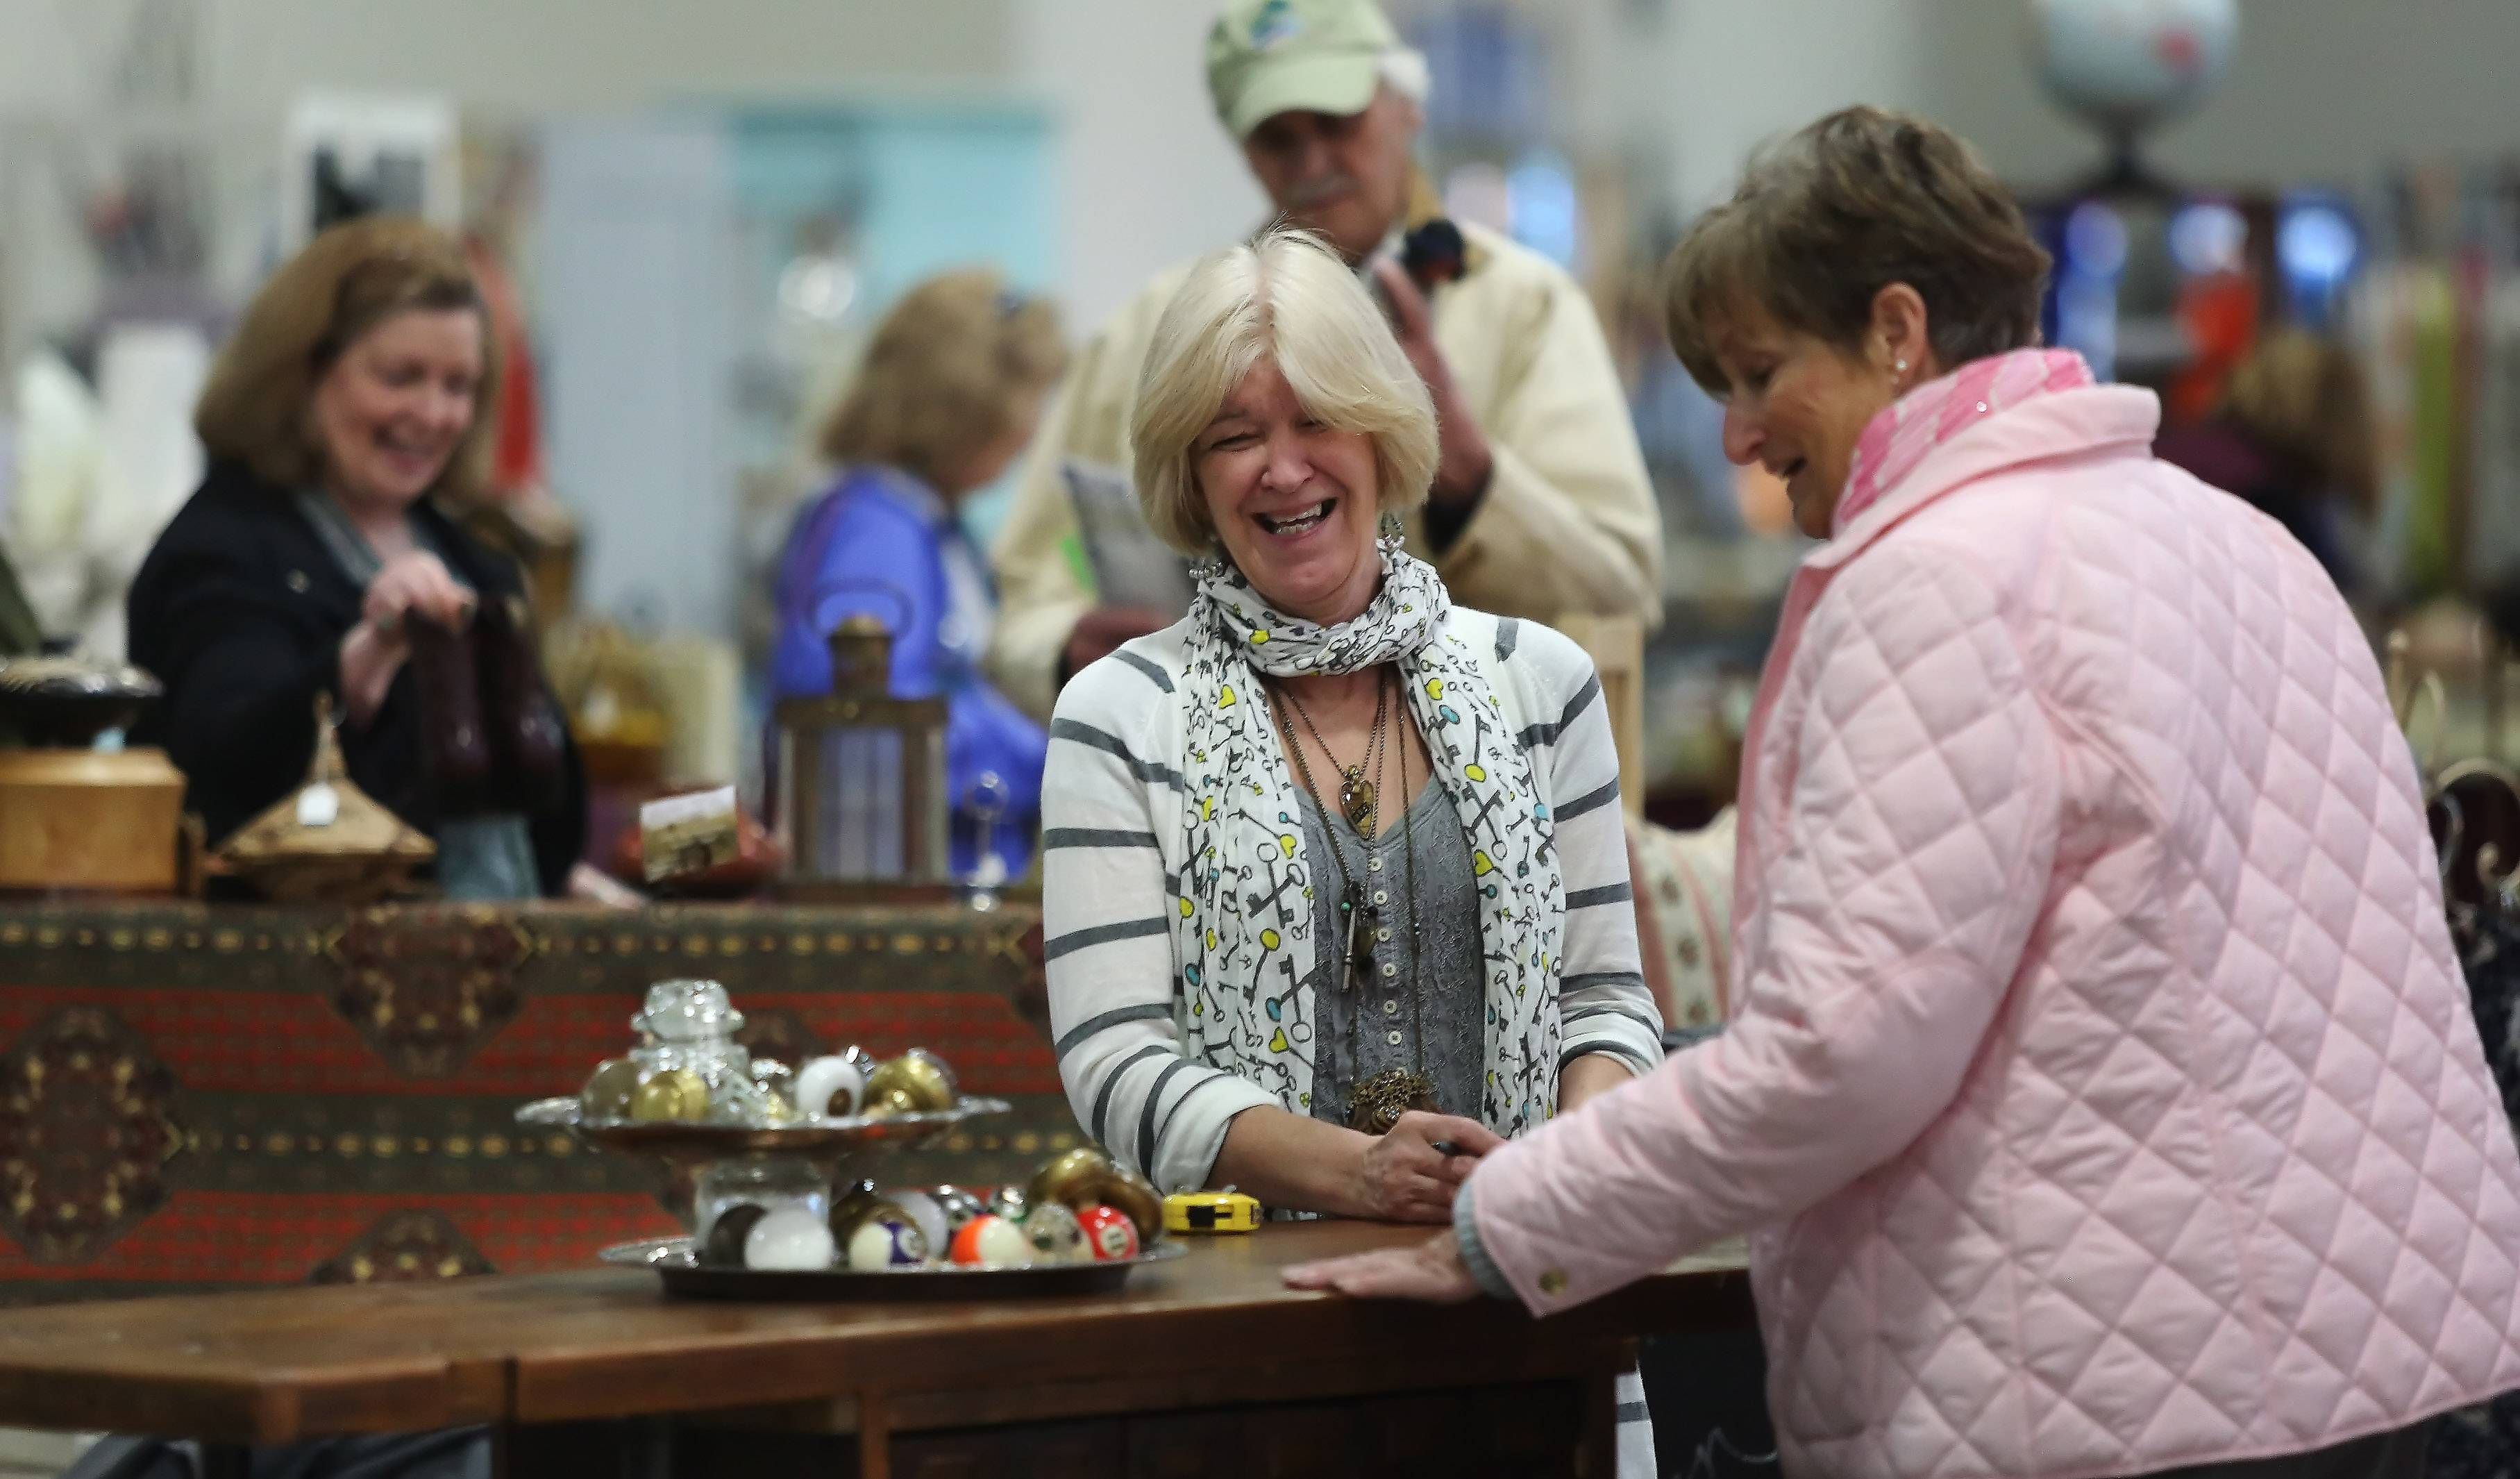 Diane Brandt of Pine Tree Primitives shares a laugh with Mary Thillens of Libertyville during the Zurko Antique and Flea Market on Sunday at the Lake County Fairgrounds in Grayslake. The monthly event features antiques, collectibles, vintage clothing and toys, sports memorabilia and more.